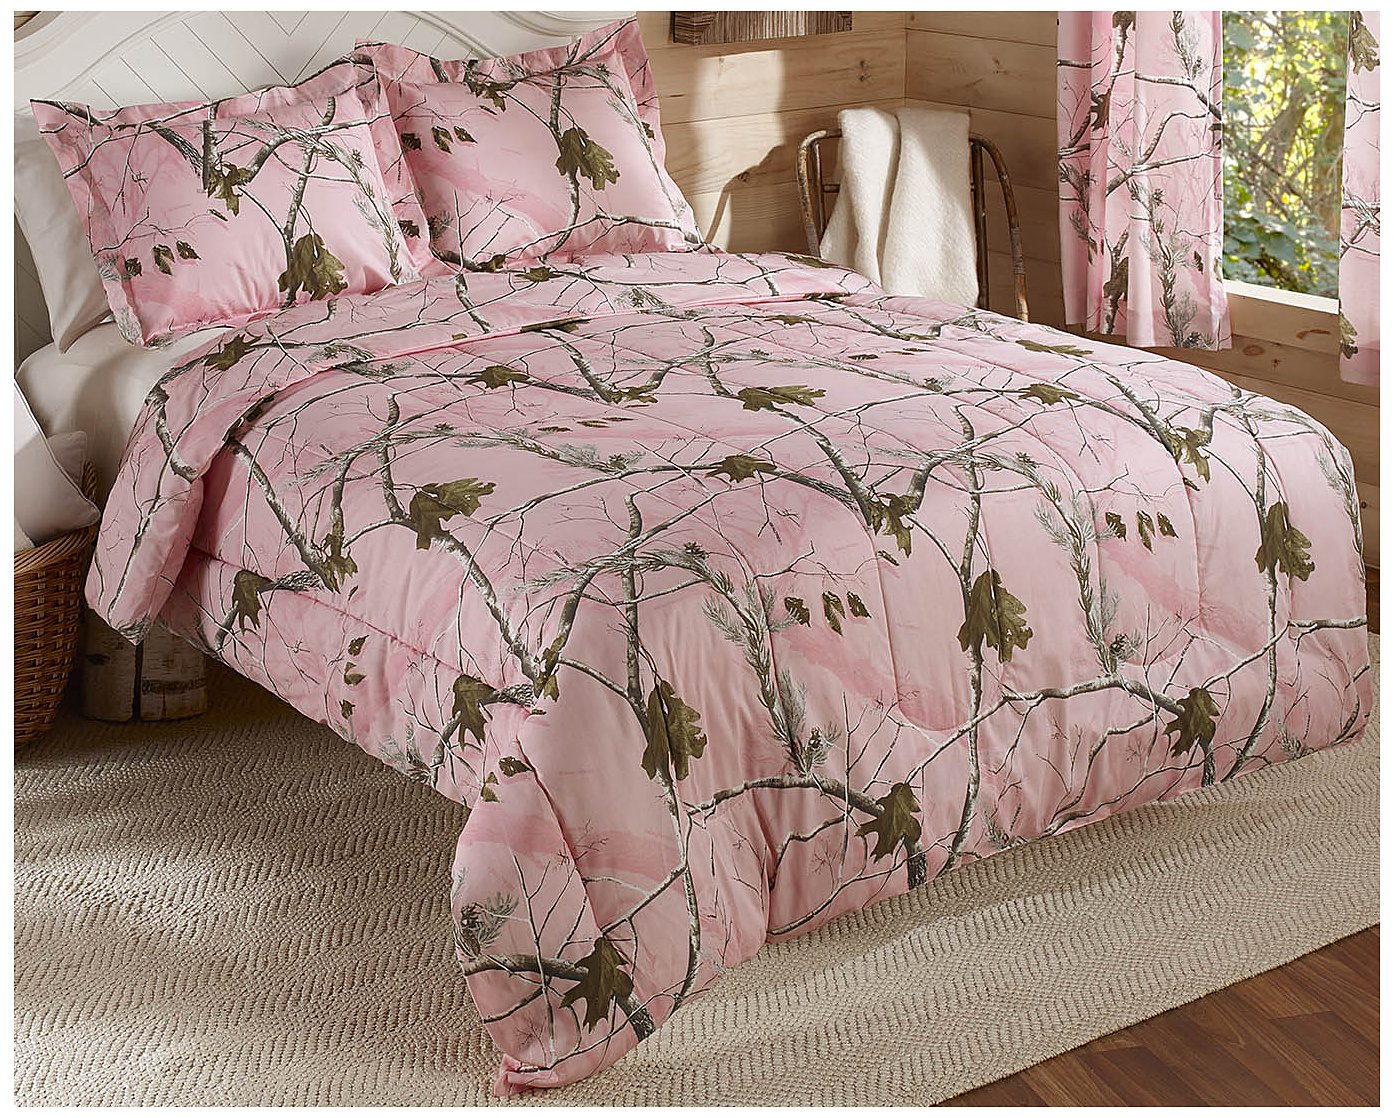 Real Tree AP Mini Comforter Set, Queen, Pink